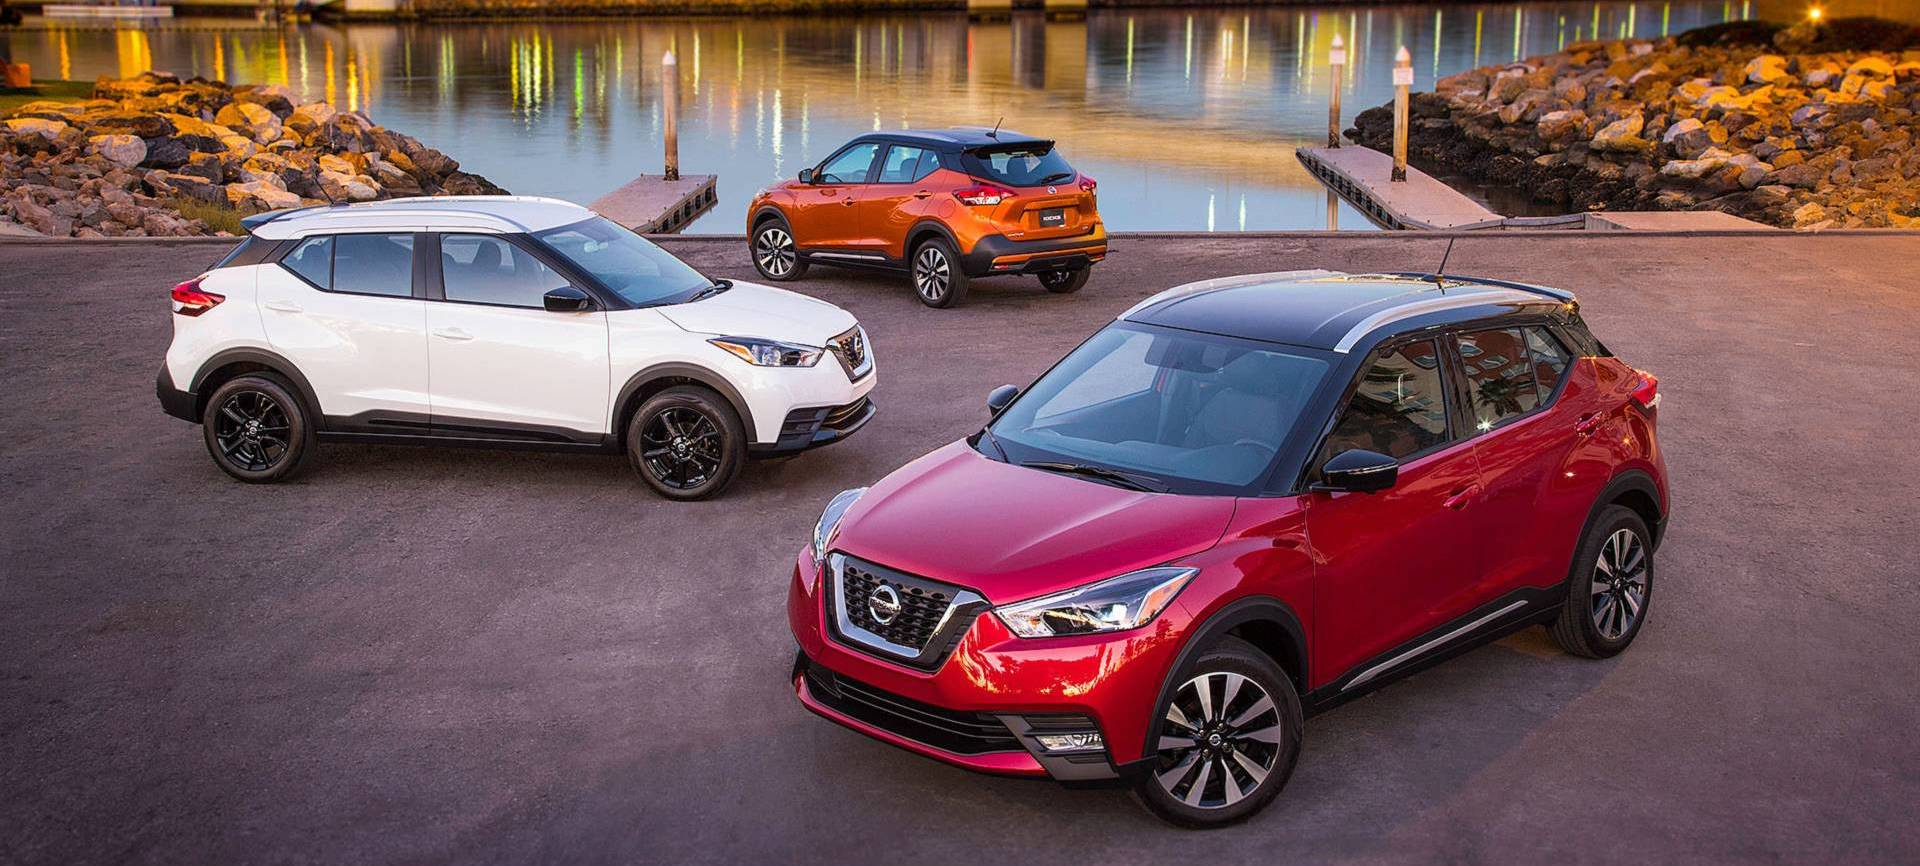 Nissan Kicks The Juke To The Curb